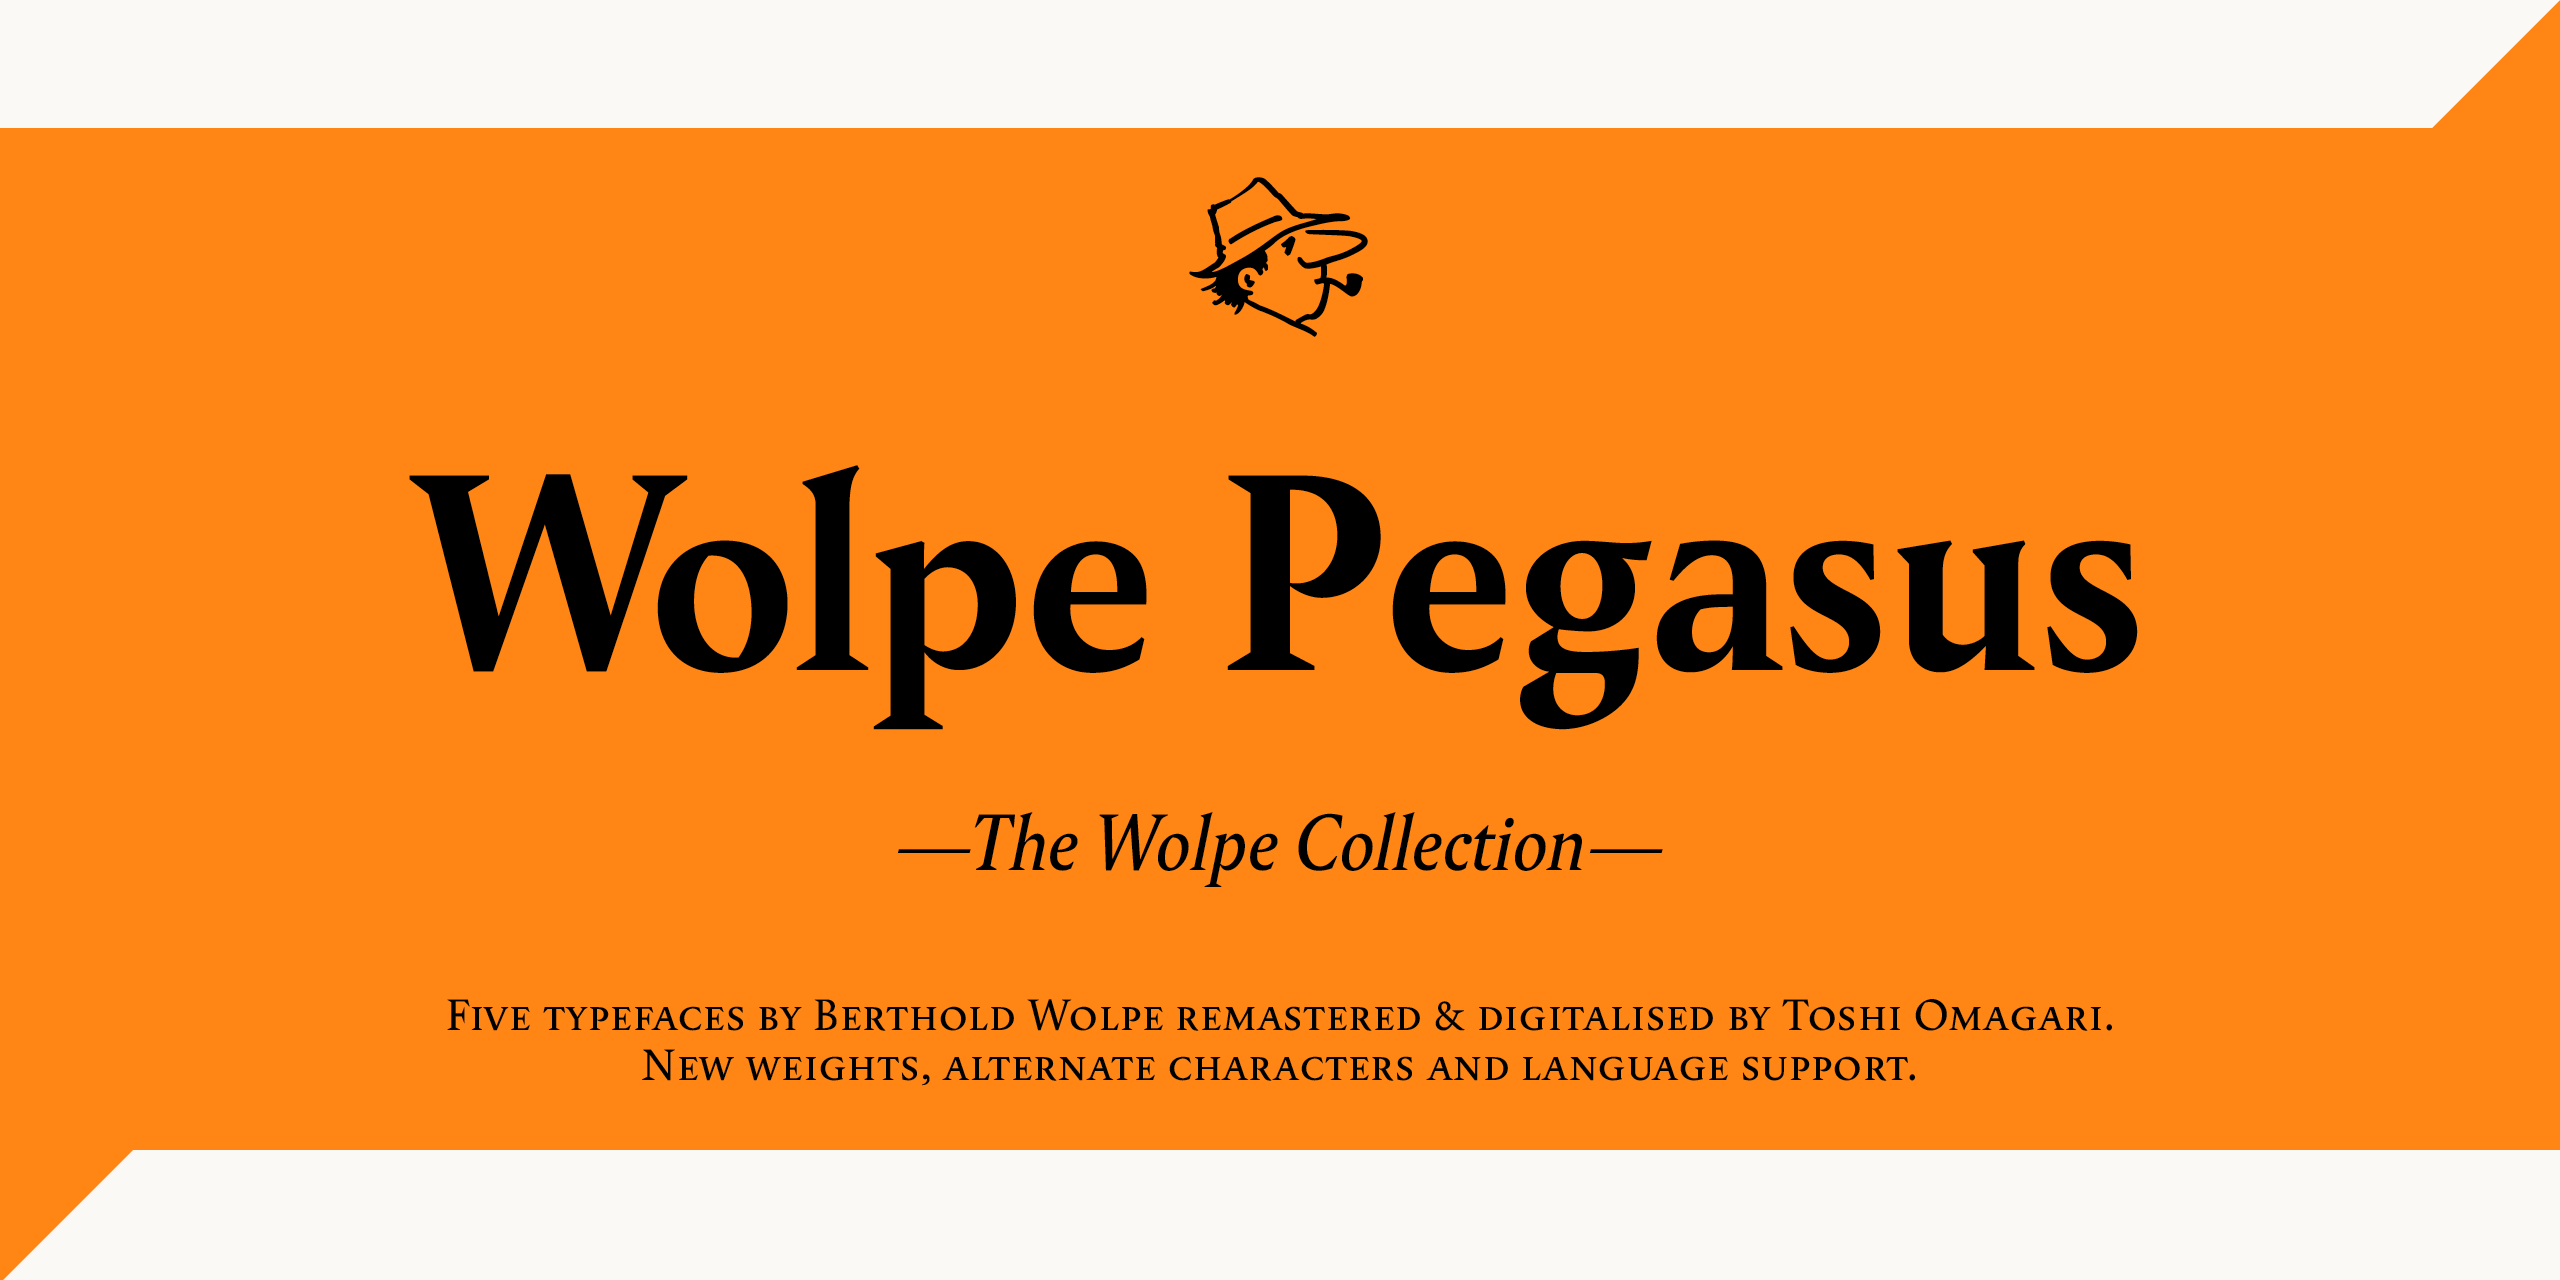 The Wolpe Collection – Wolpe Pegasus